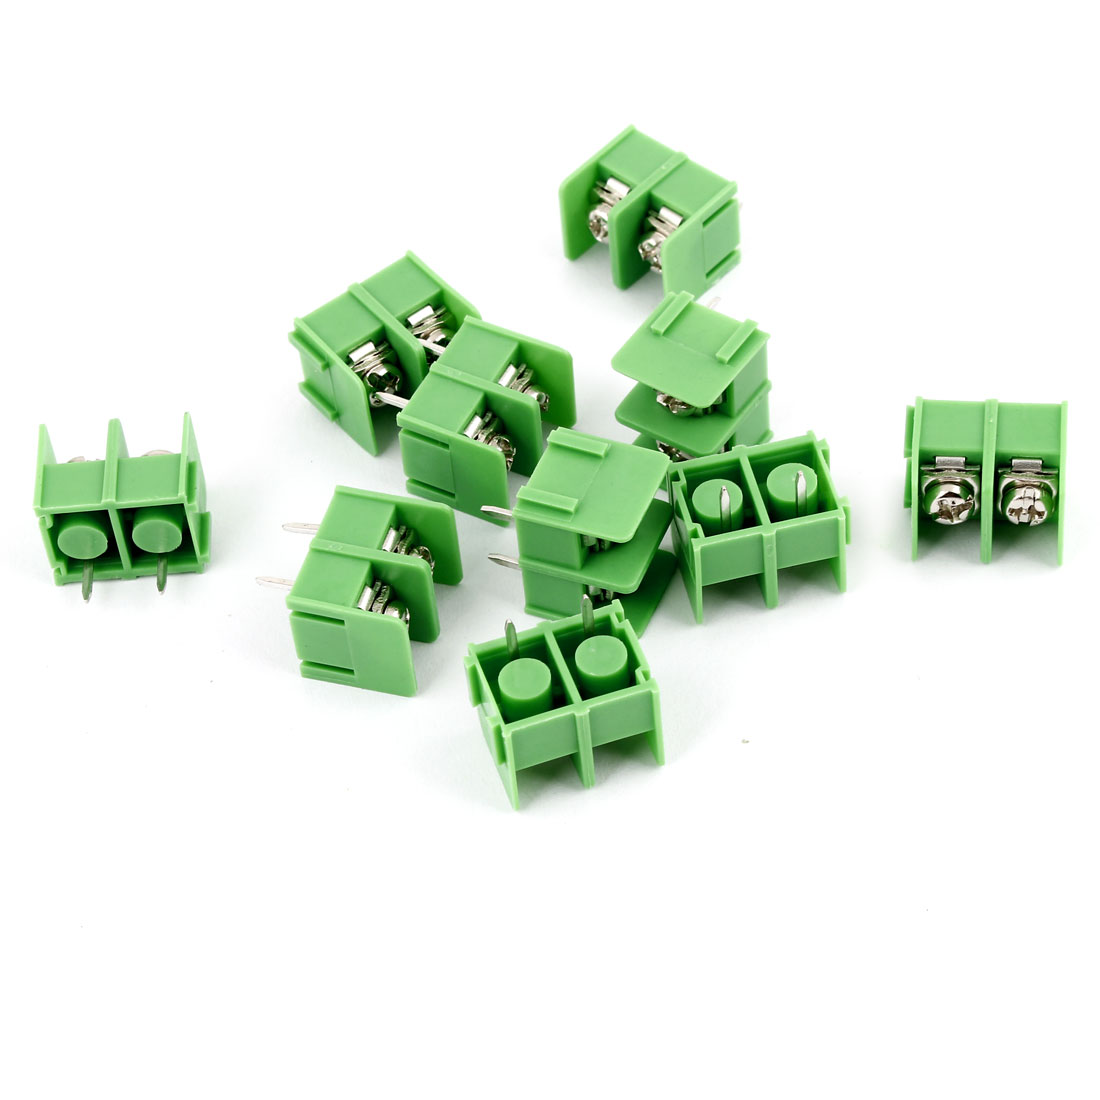 10pcs Green 2 Pin 7.62mm Single Row Screw Pluggable Terminal Block Straight Connector 300V 20A